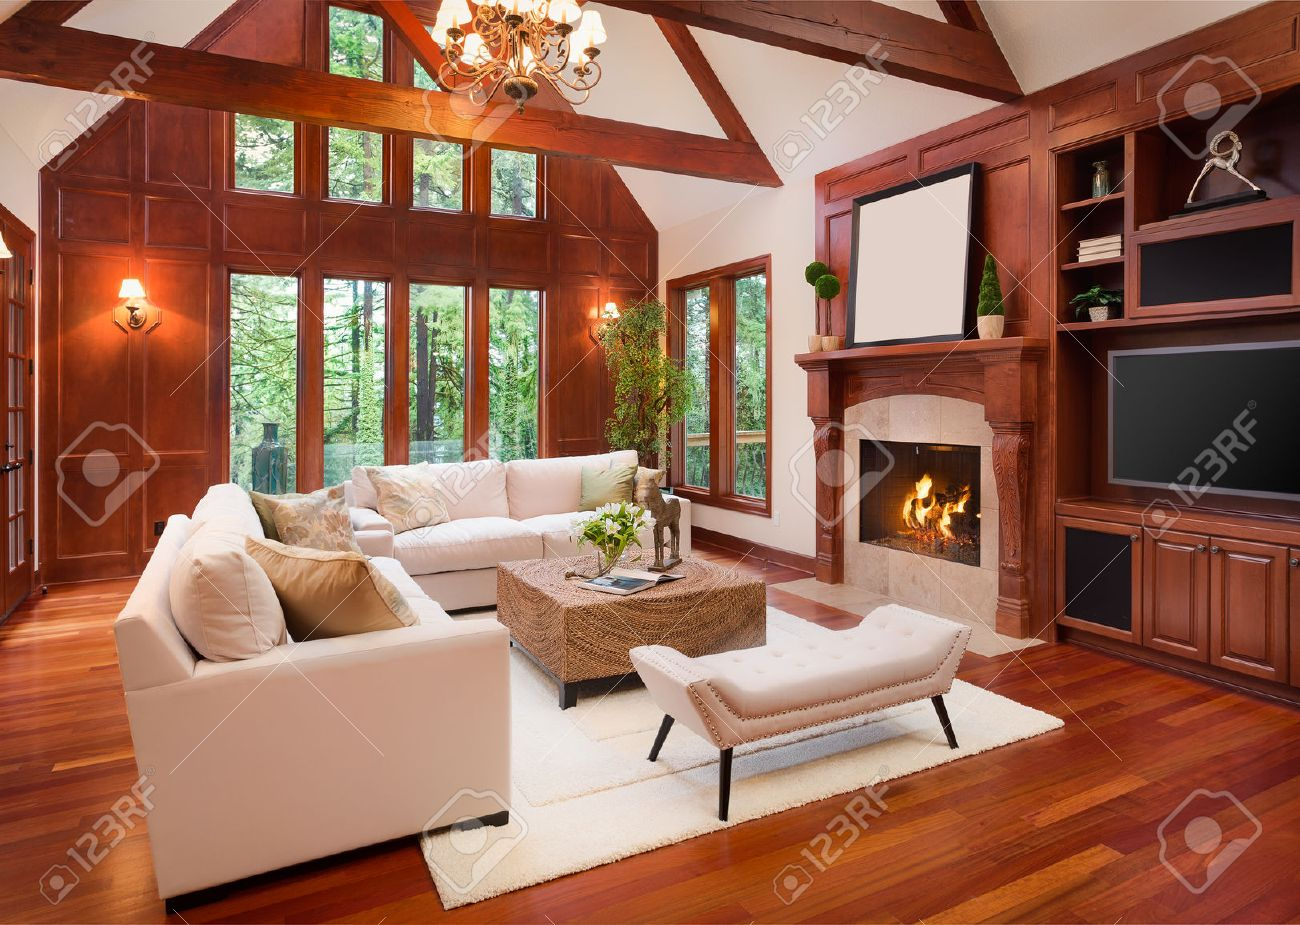 Beautiful Living Room Interior With Hardwood Floors And Fireplace In New  Luxury Home. Includes Built Part 86